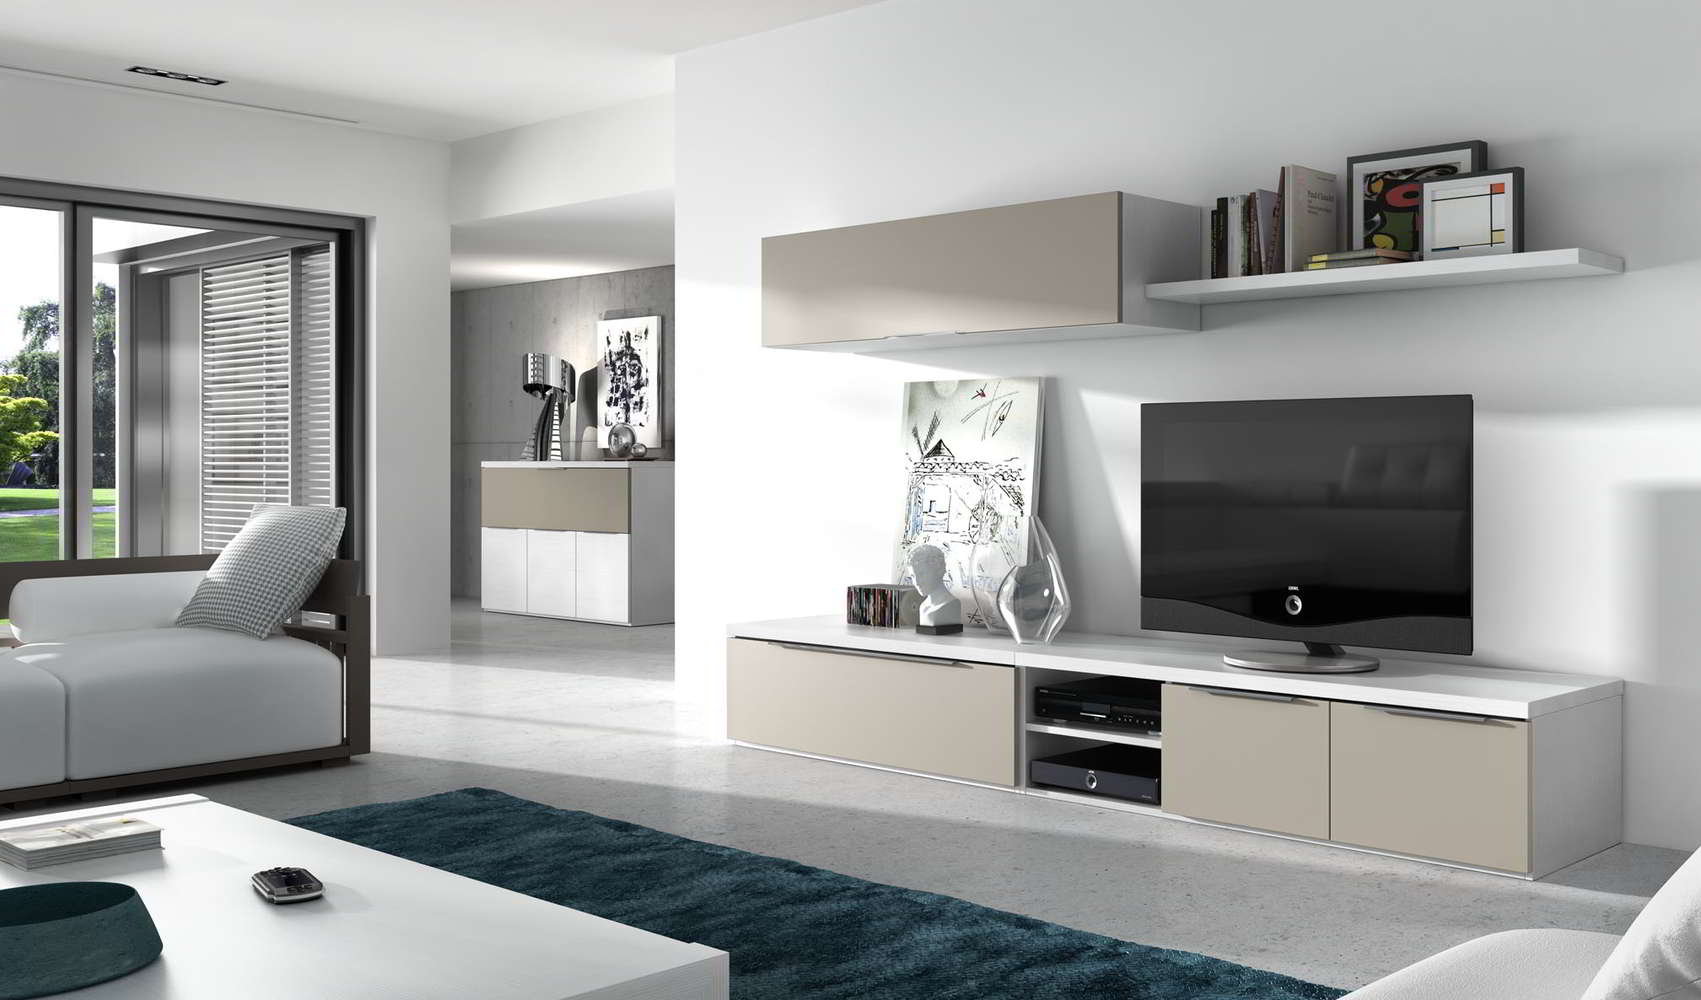 muebles paco caballero ofertas del mueble. Black Bedroom Furniture Sets. Home Design Ideas